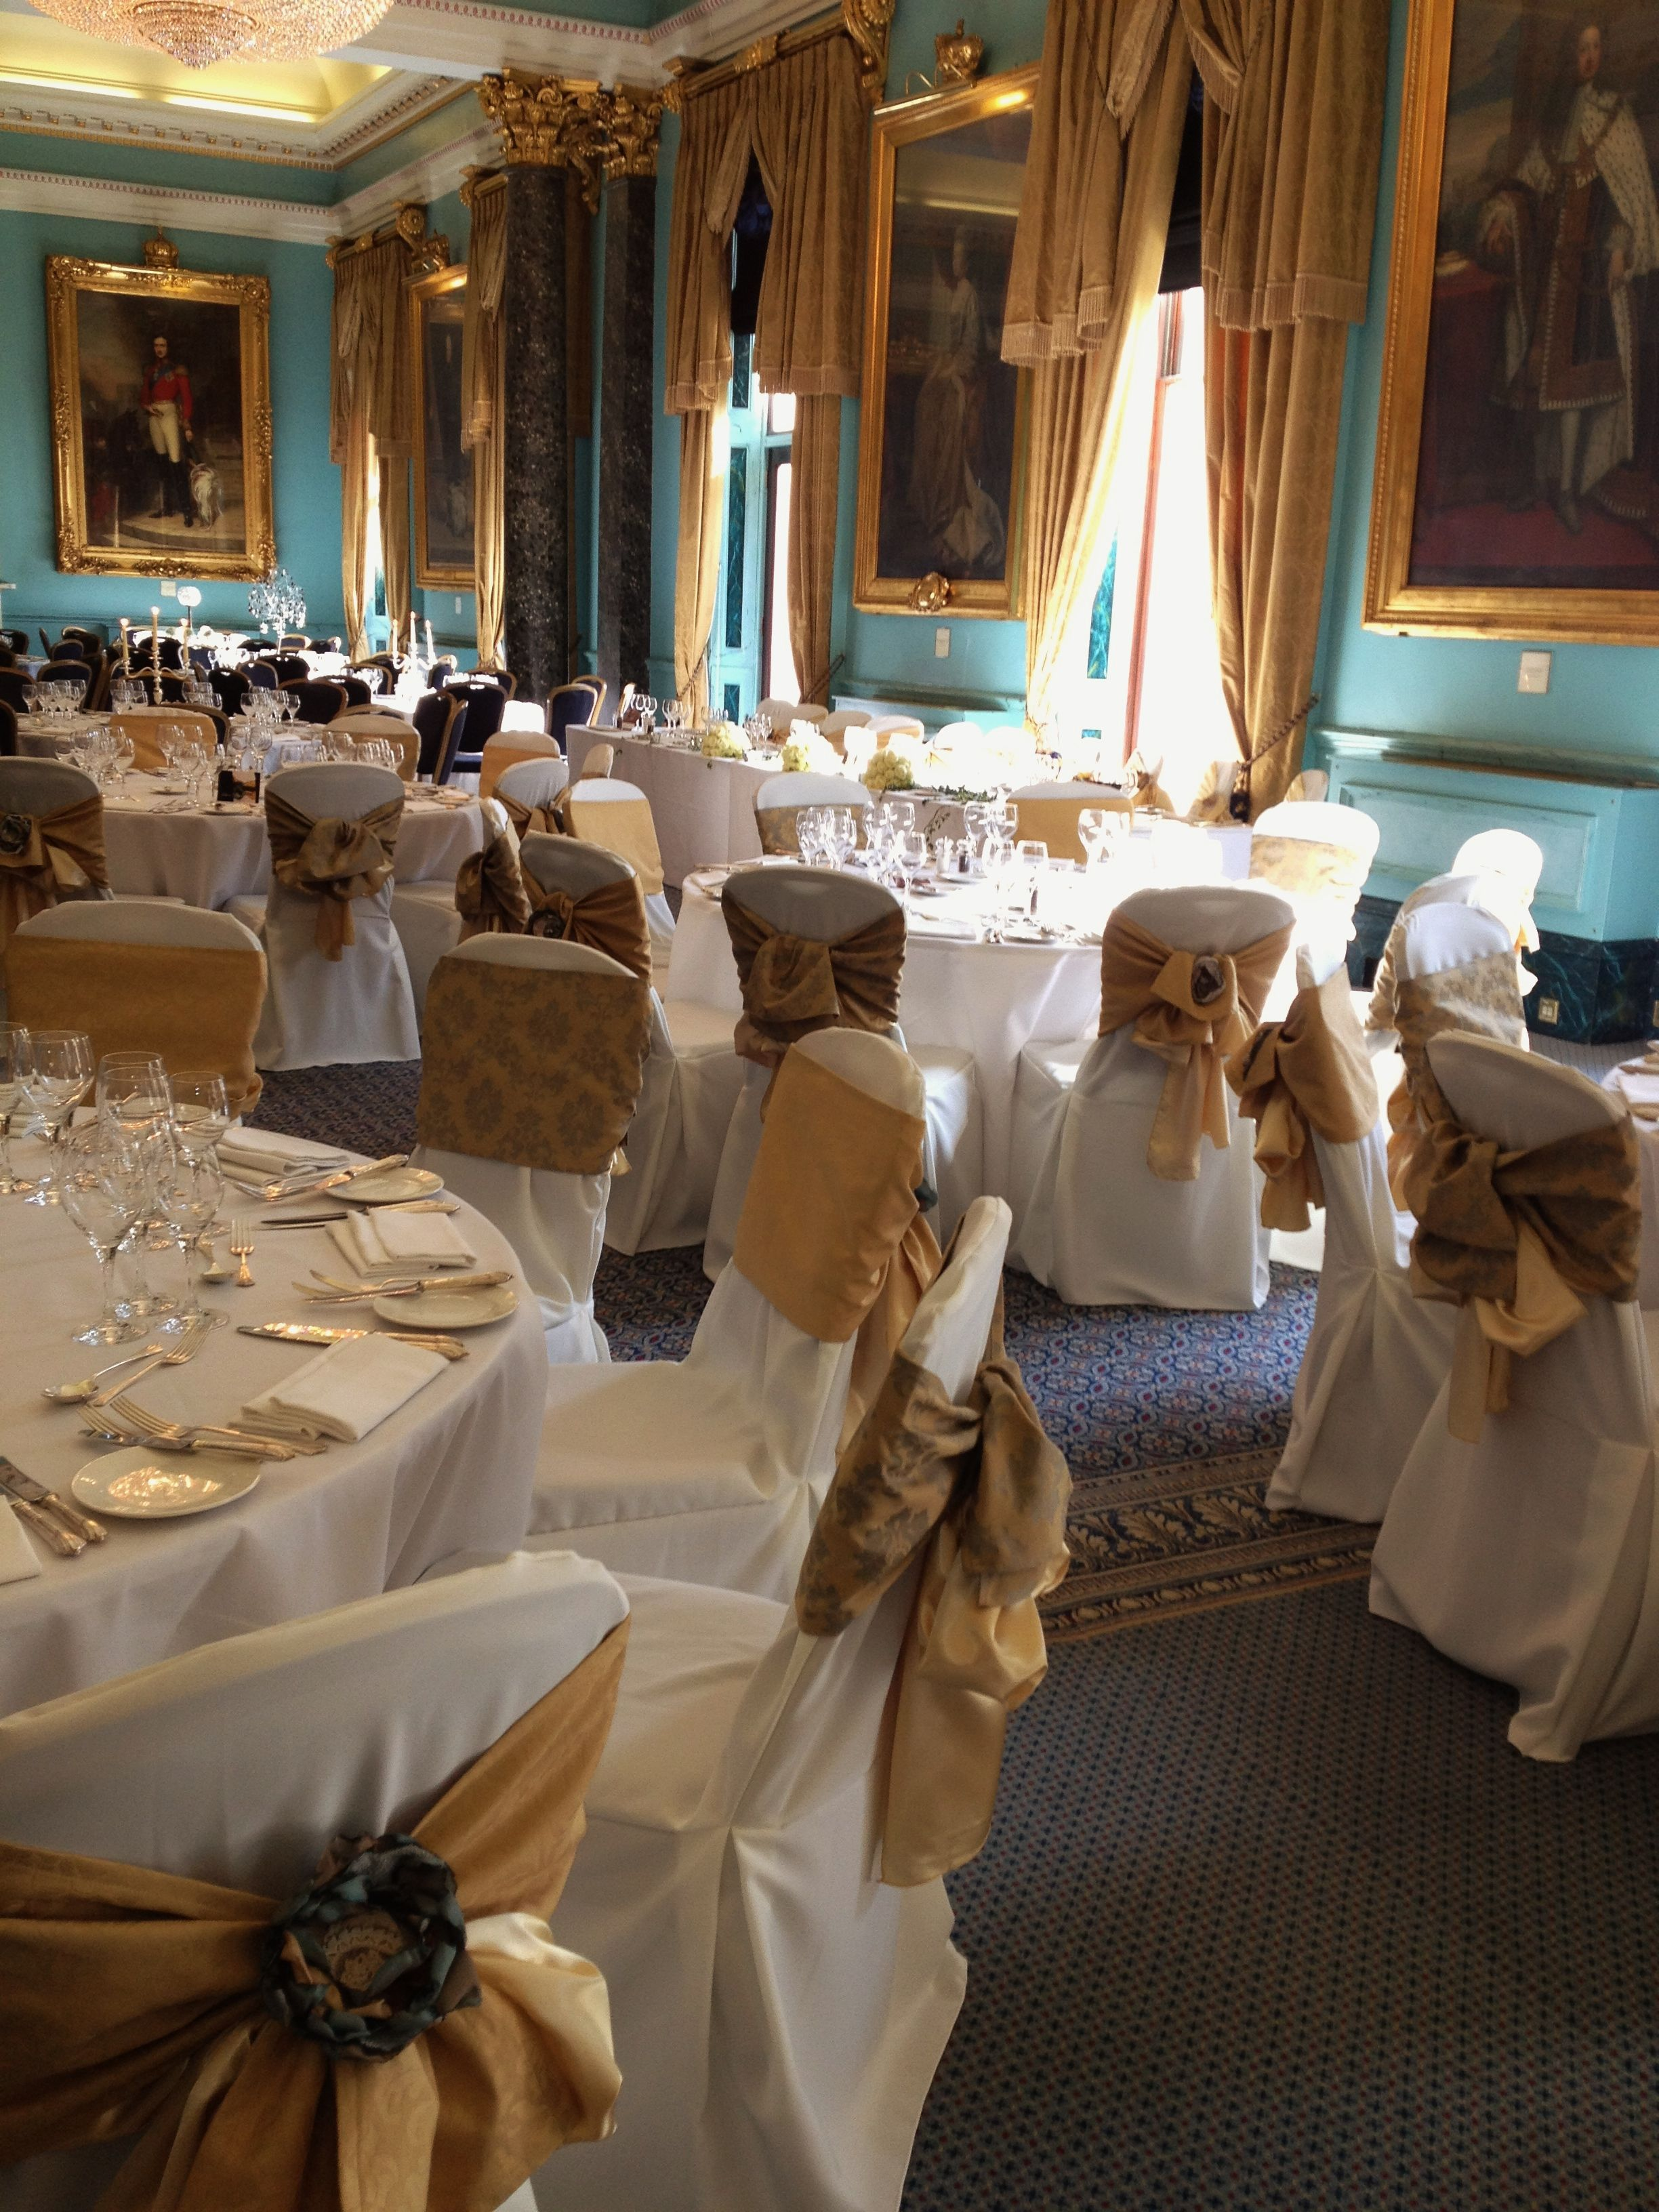 Double sashes in heavy Damask over ivory chair covers -  Tabletodine for.com